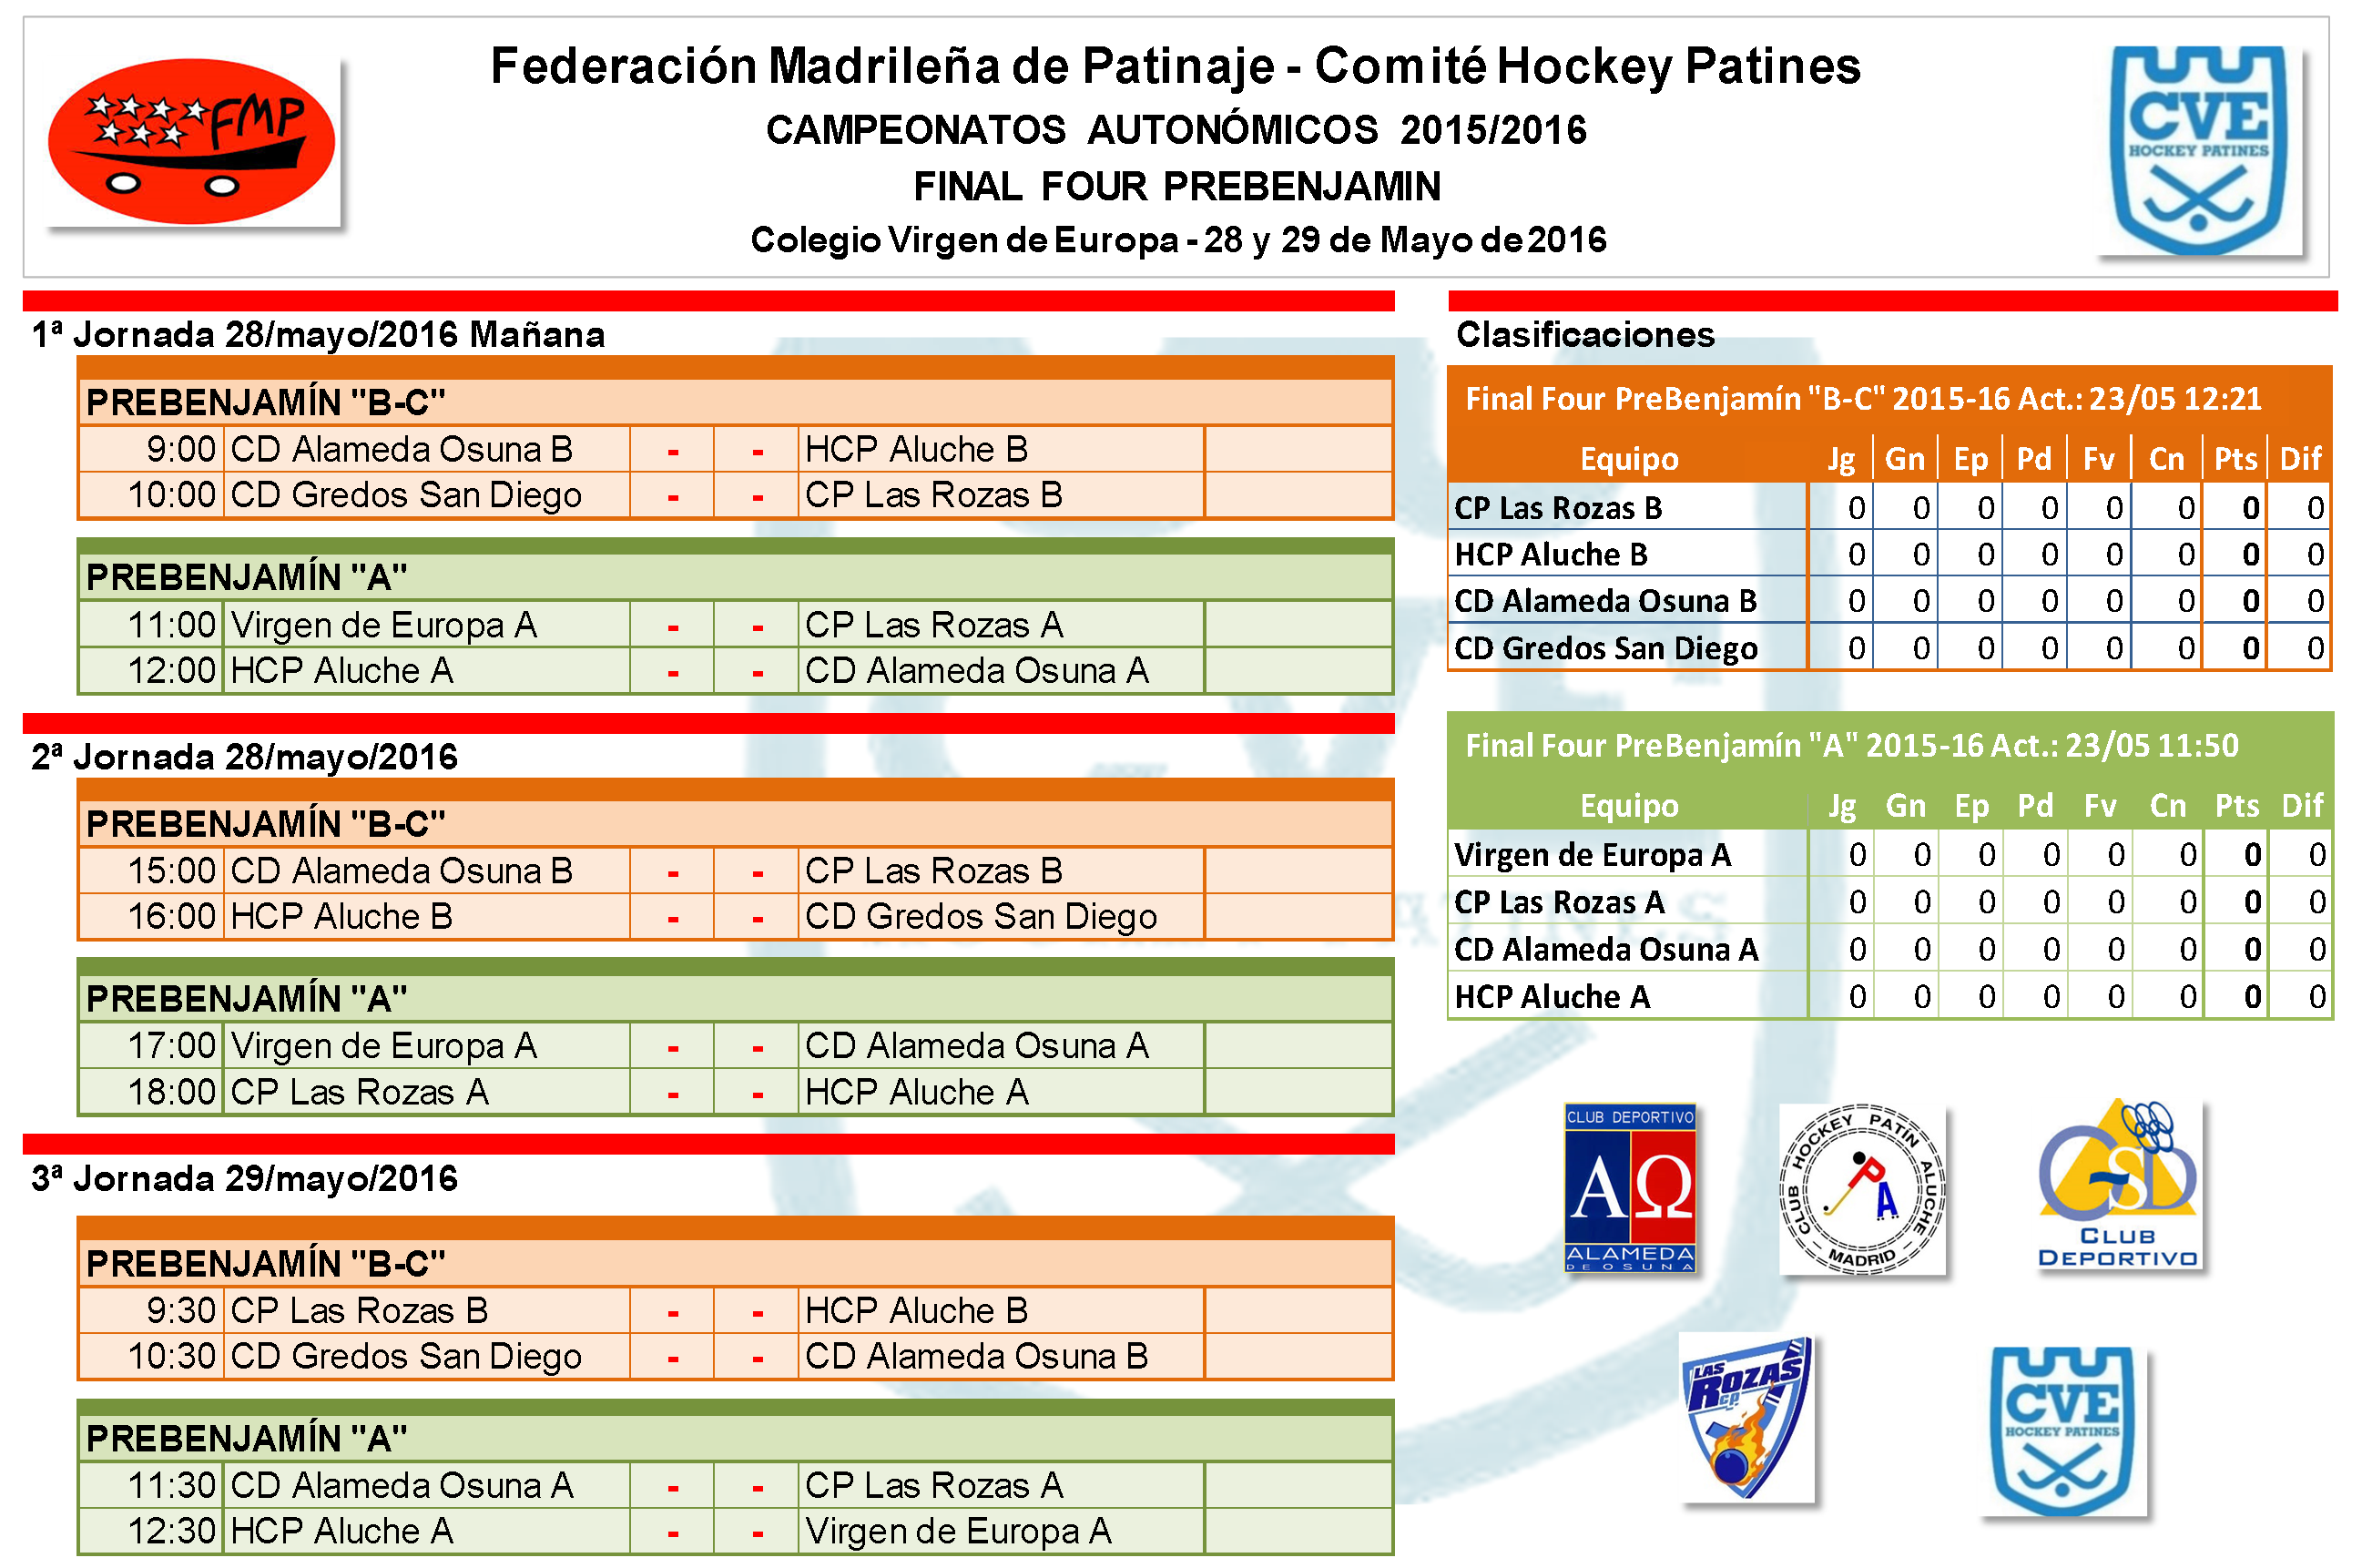 Campeonatos autonómicos de hockey patines. Final Four Virgen de Europa